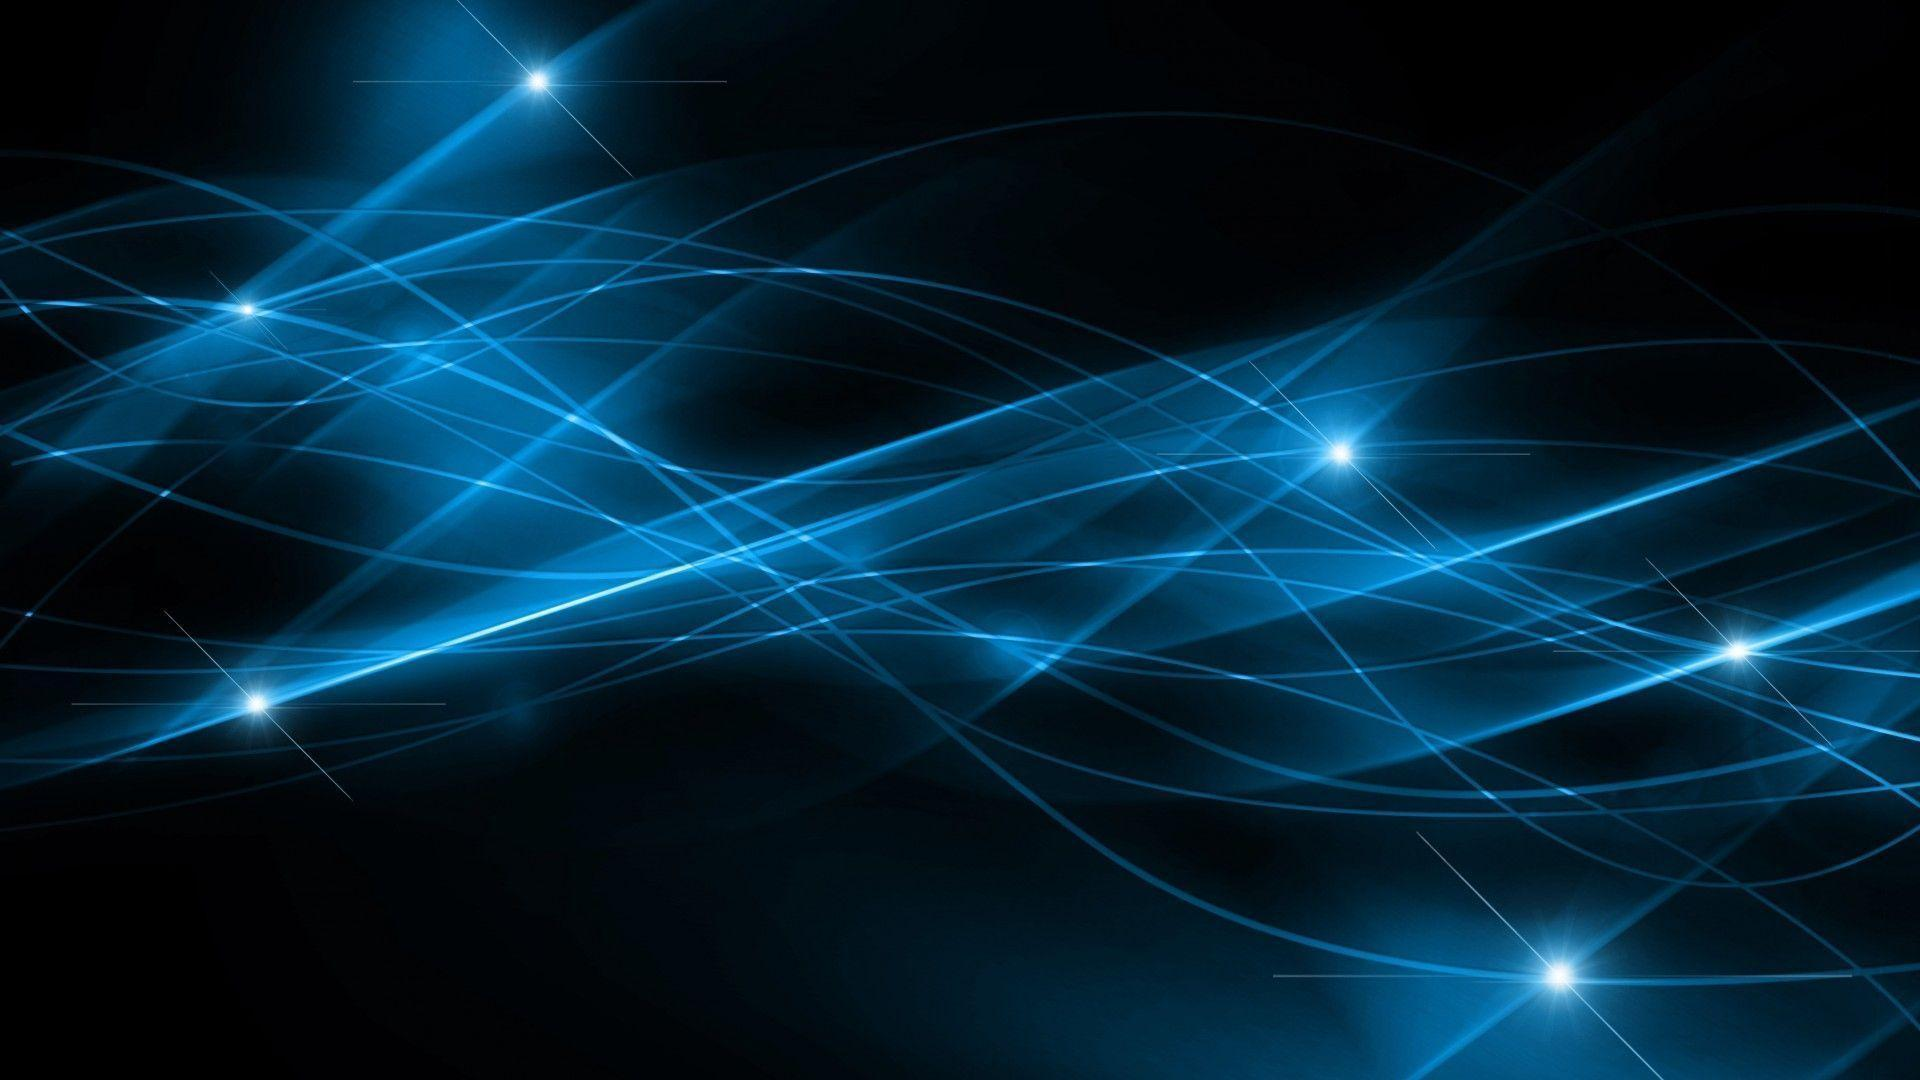 Black and Blue Abstract PPT Backgrounds